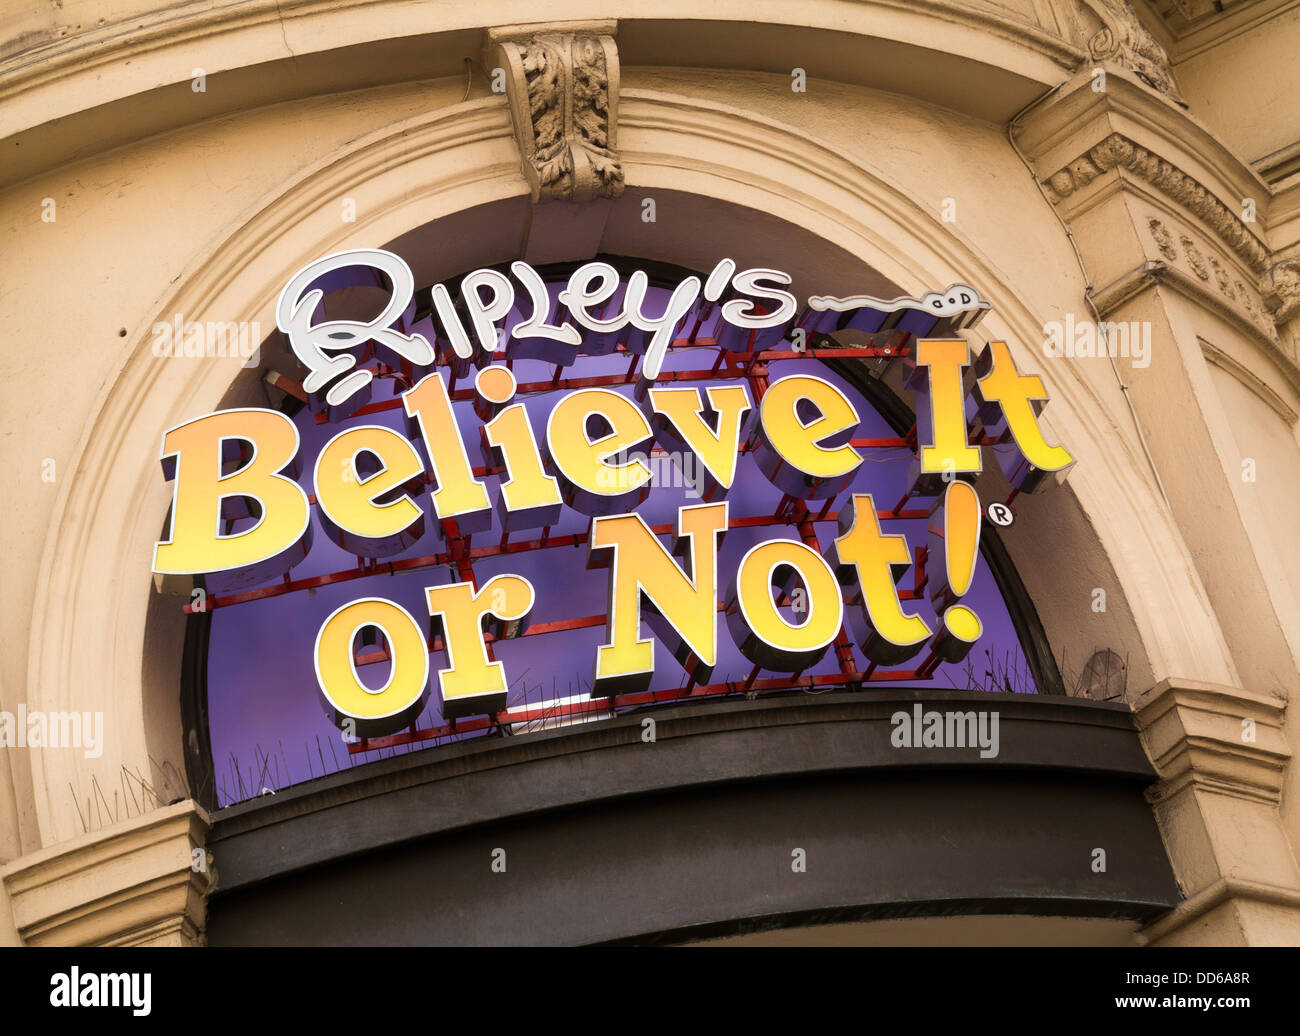 Ripley's 'Believe it or Not' attraction in London - Stock Image